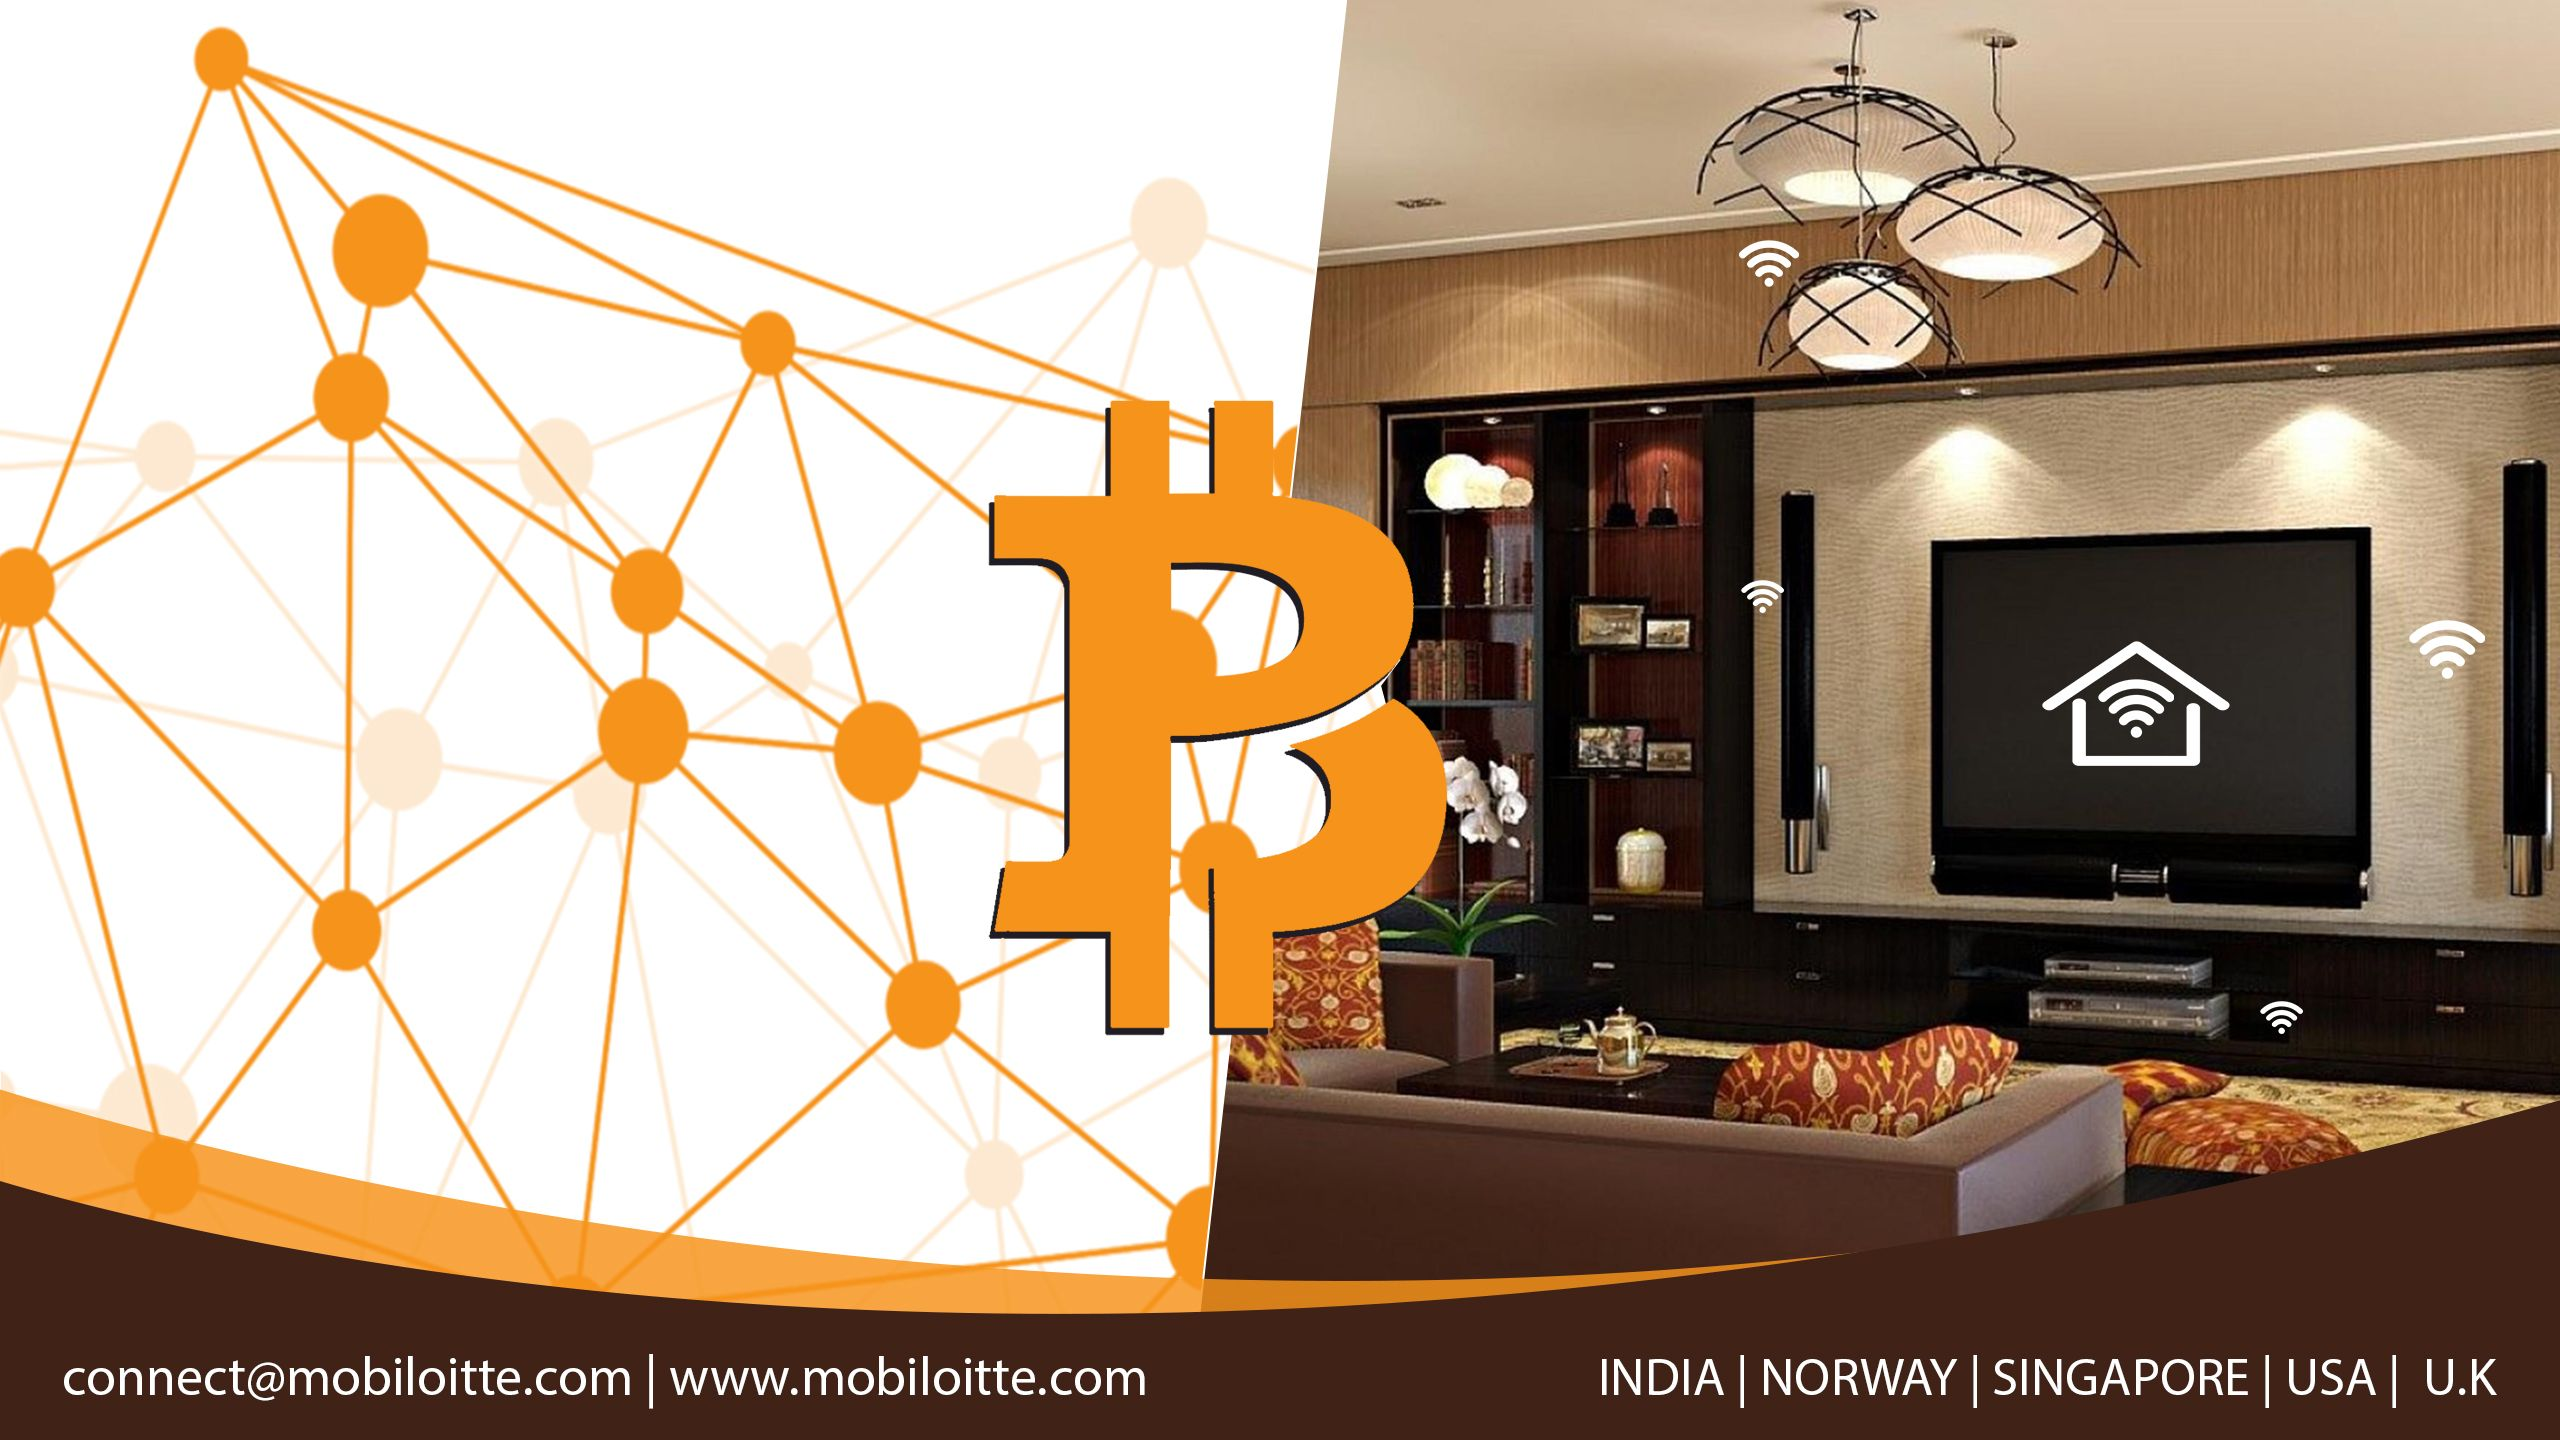 mobiloitte #iot #internetofthings #services #solutions